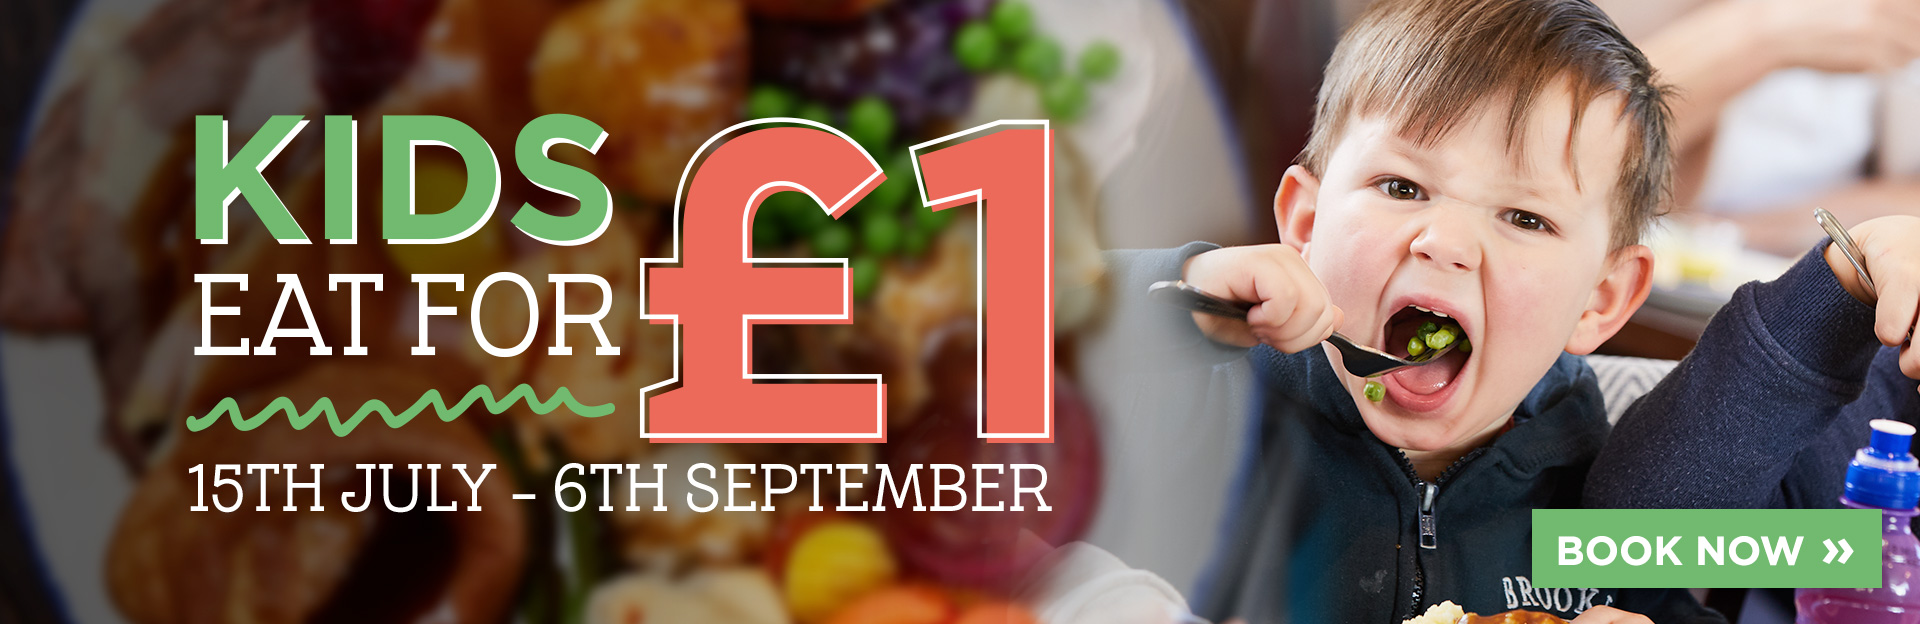 Kids eat for £1 at The Woodend